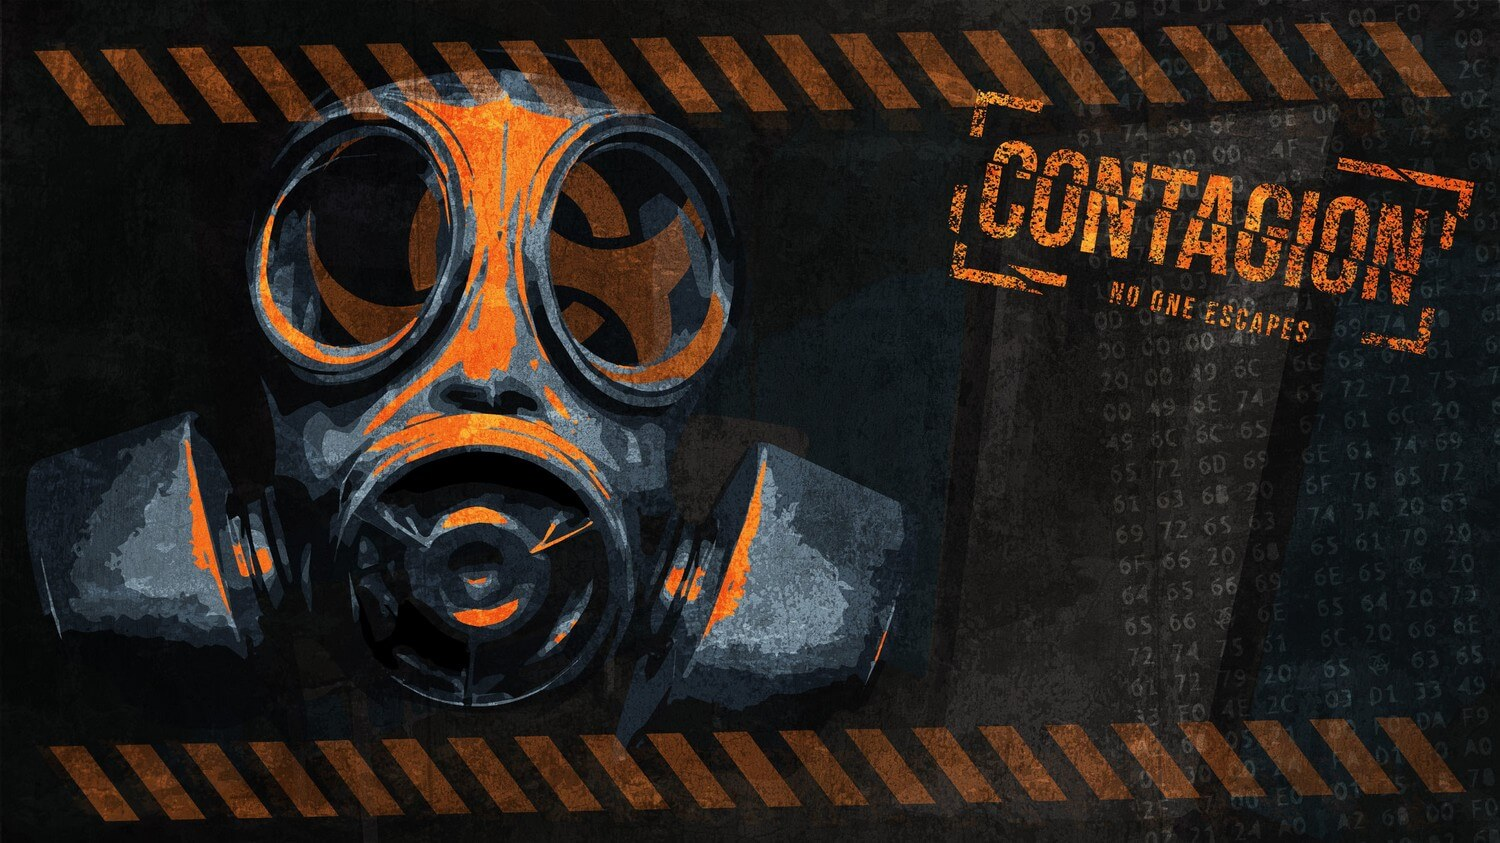 contagion - OPEN NOW AT GRAINGER STREETDo you and your team have what it takes to break the codes, find the clues, solve the puzzles and escape the room with the antidote before your 60 minutes runs out?